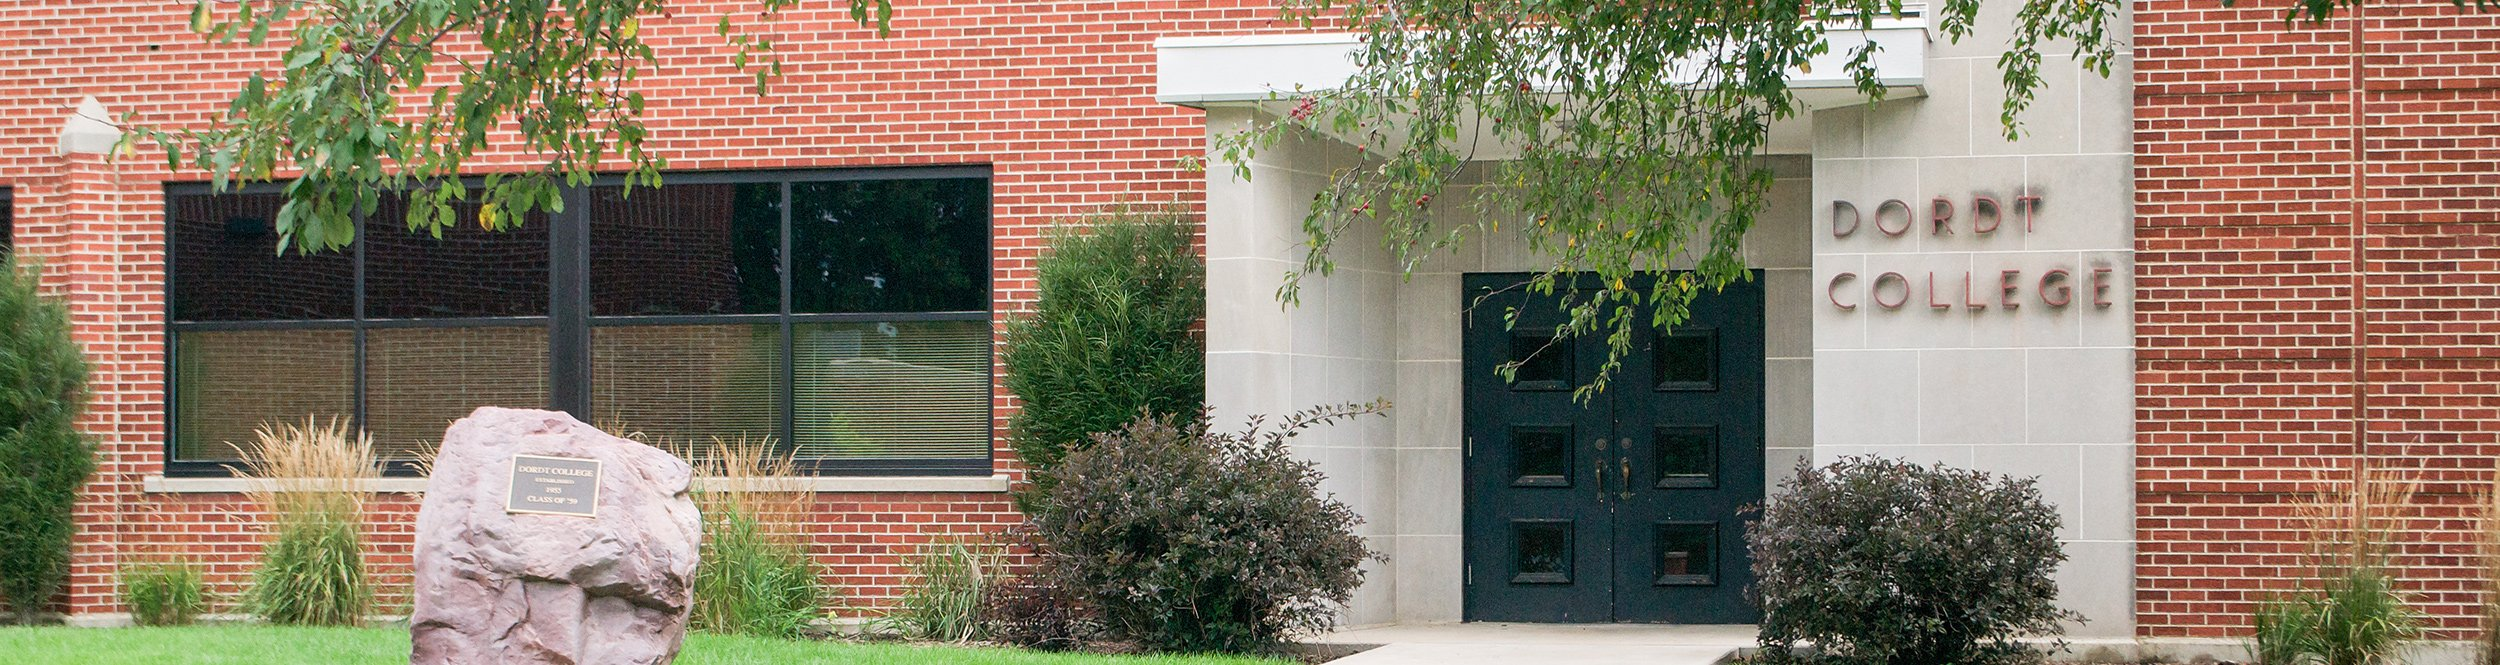 The original entrance to Dordt's campus, a concrete doorway.